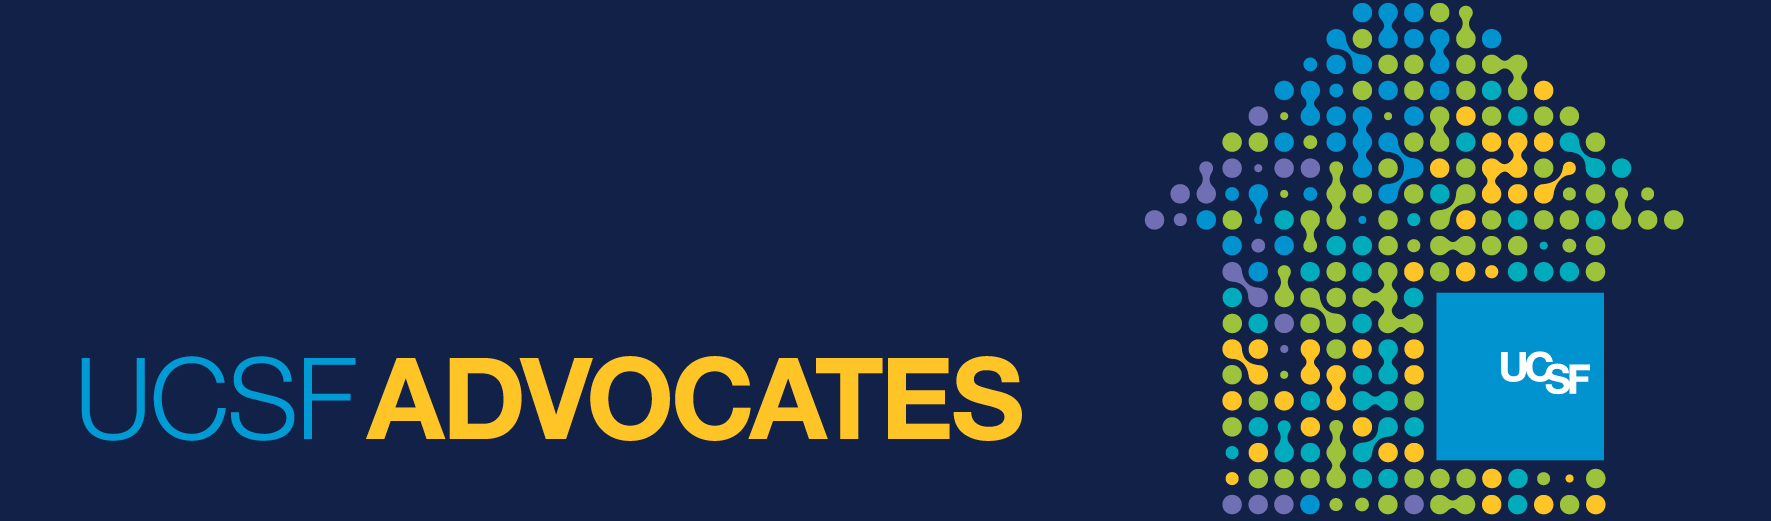 UCSF Advocates graphic banner